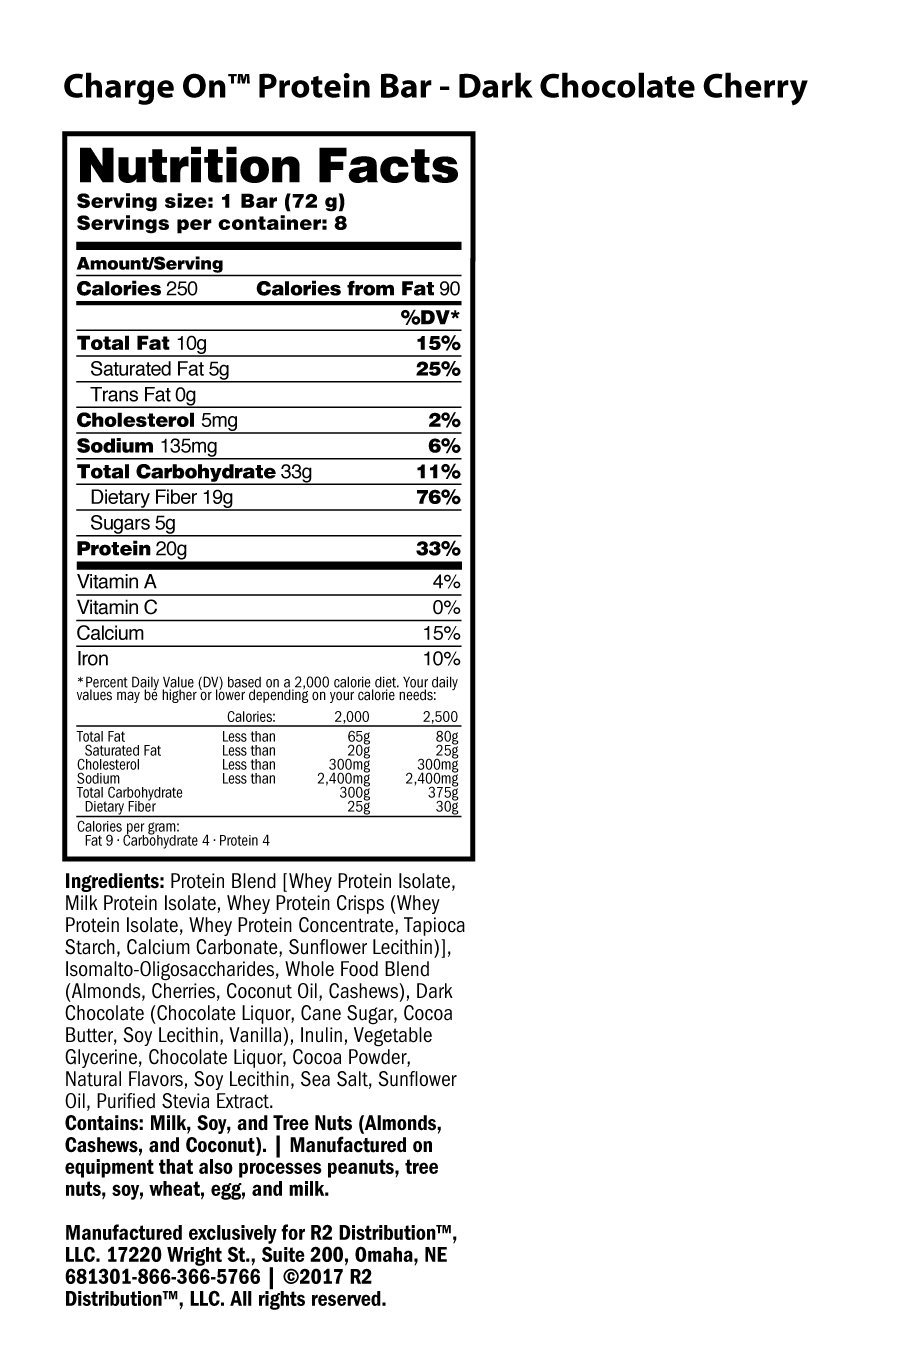 Charge On Protein Bar -Nutrition Facts